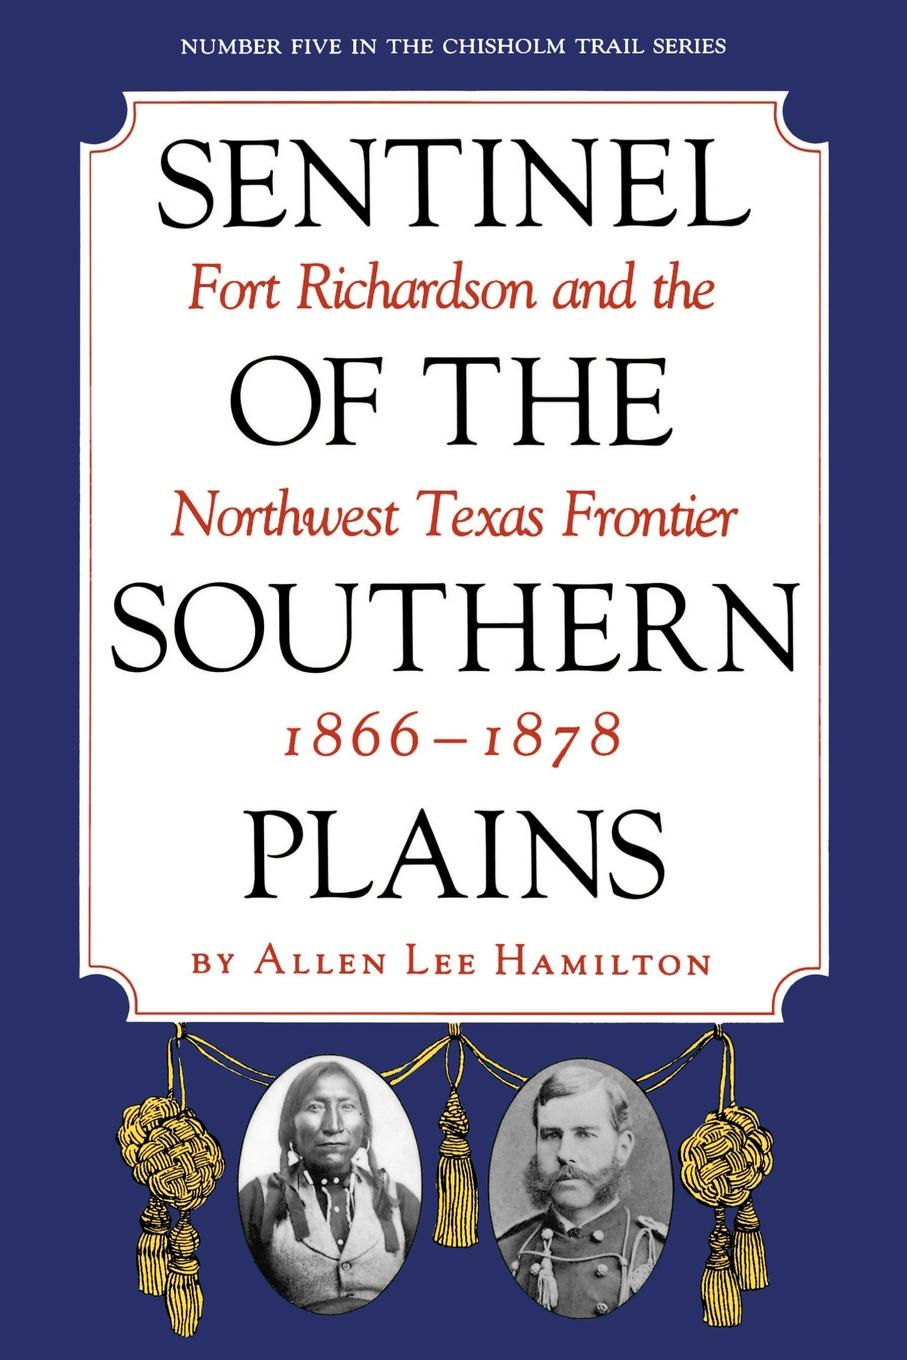 цена Allen Lee Hamilton Sentinel of the Southern Plains. Fort Richardson and the Northwest Texas Frontier, 1866-1878 онлайн в 2017 году